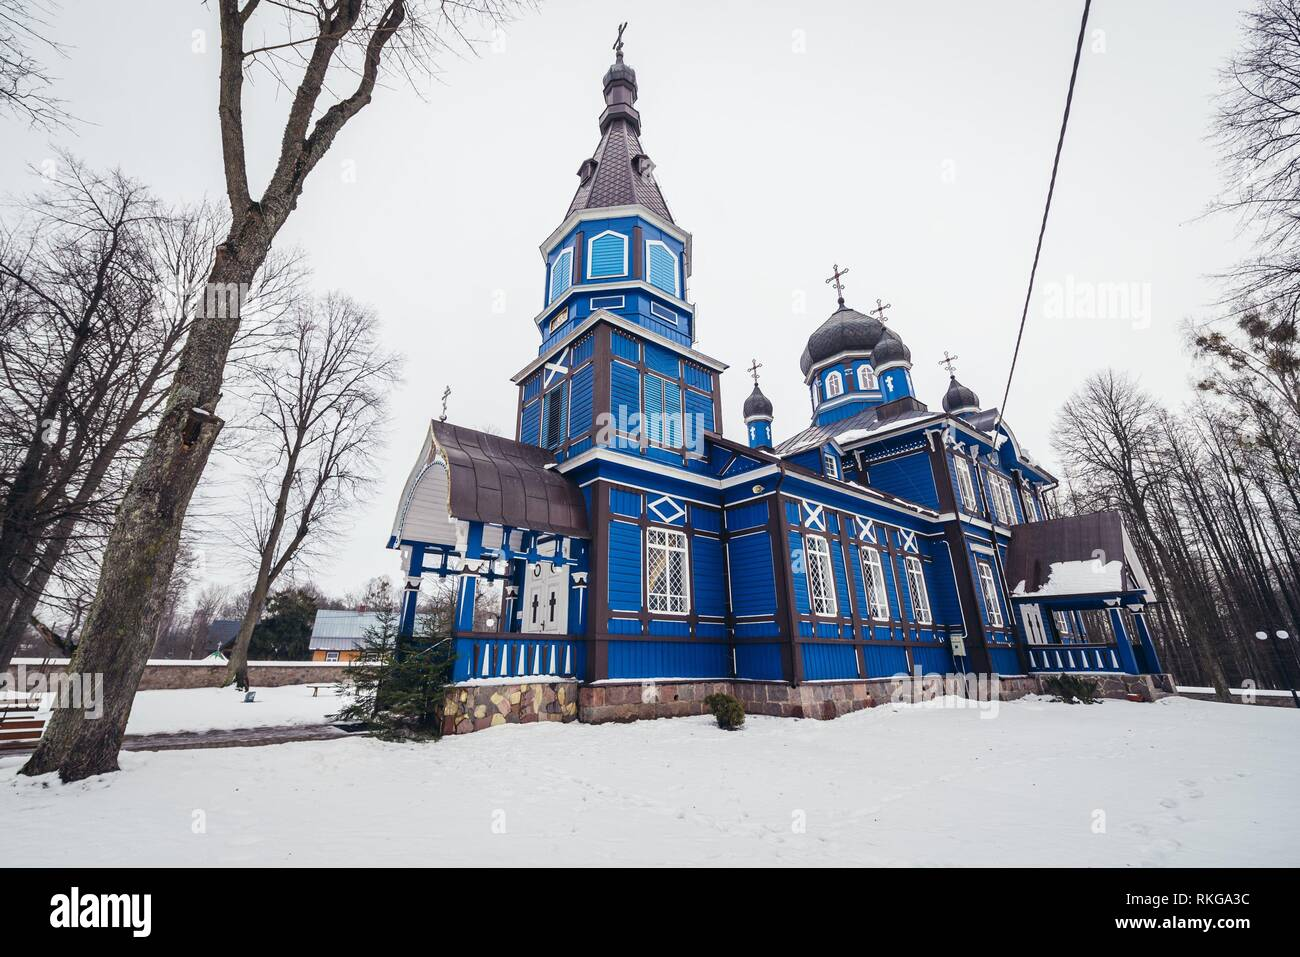 Orthodox church of Protection of the Mother of God in Puchly village, Hajnowka County in Podlaskie Voivodeship of northeastern Poland. - Stock Image